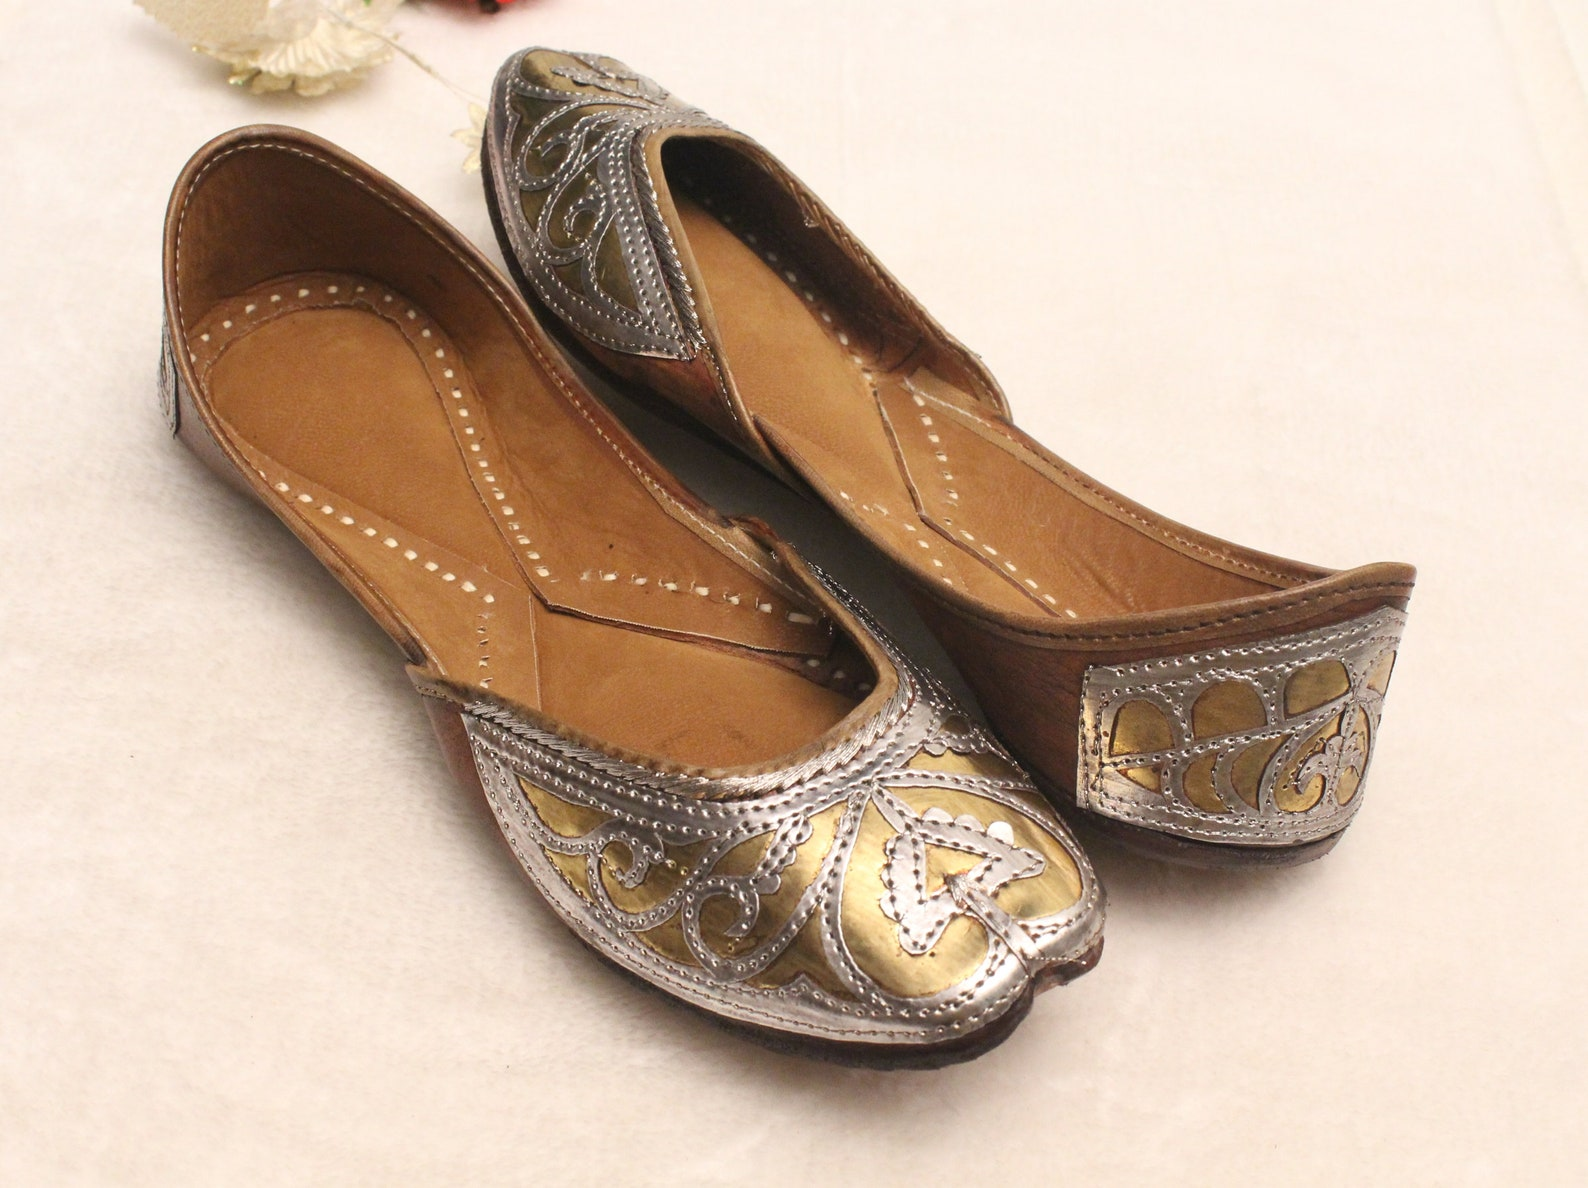 women leather flat shoes/indian shoes/punjabi jutti/summer traditional flat shoes/ballet flats/muslim shoes/bridal khussa women